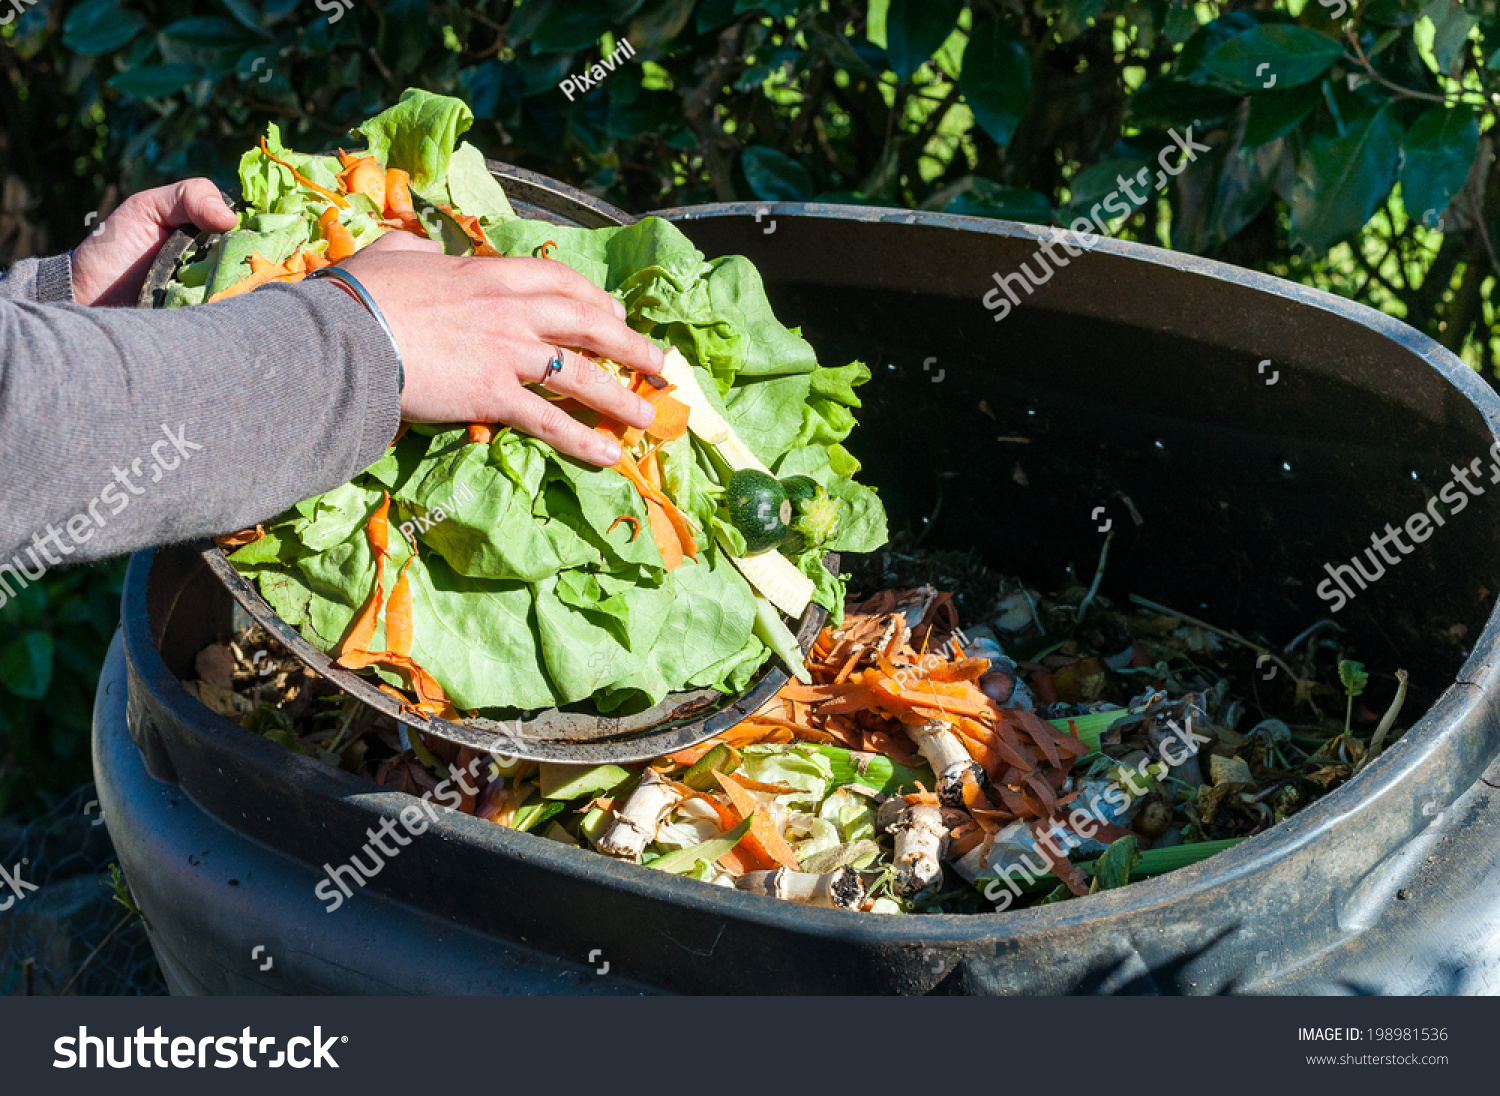 Image result for kitchen waste